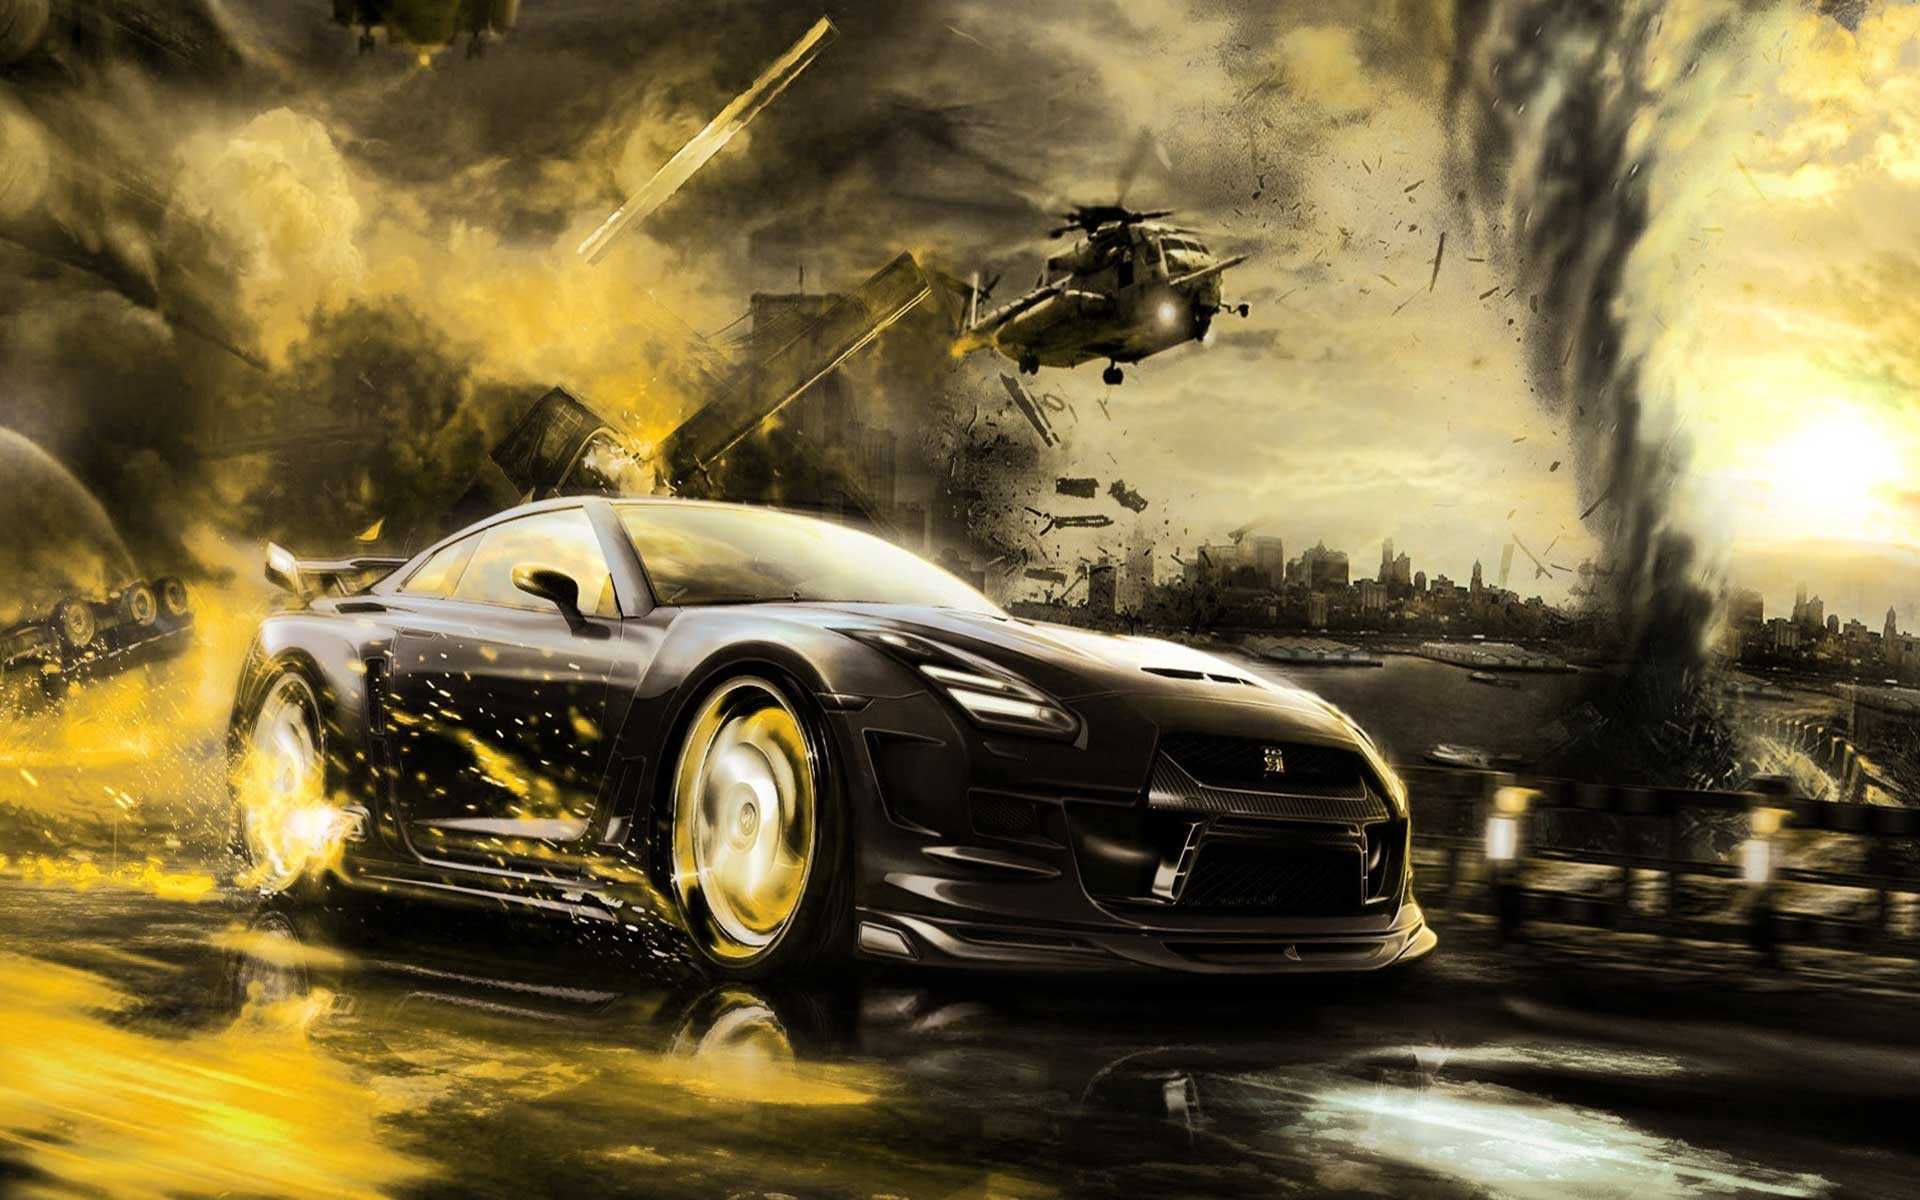 Res: 1920x1200, beautiful 3d car wallpaper hd